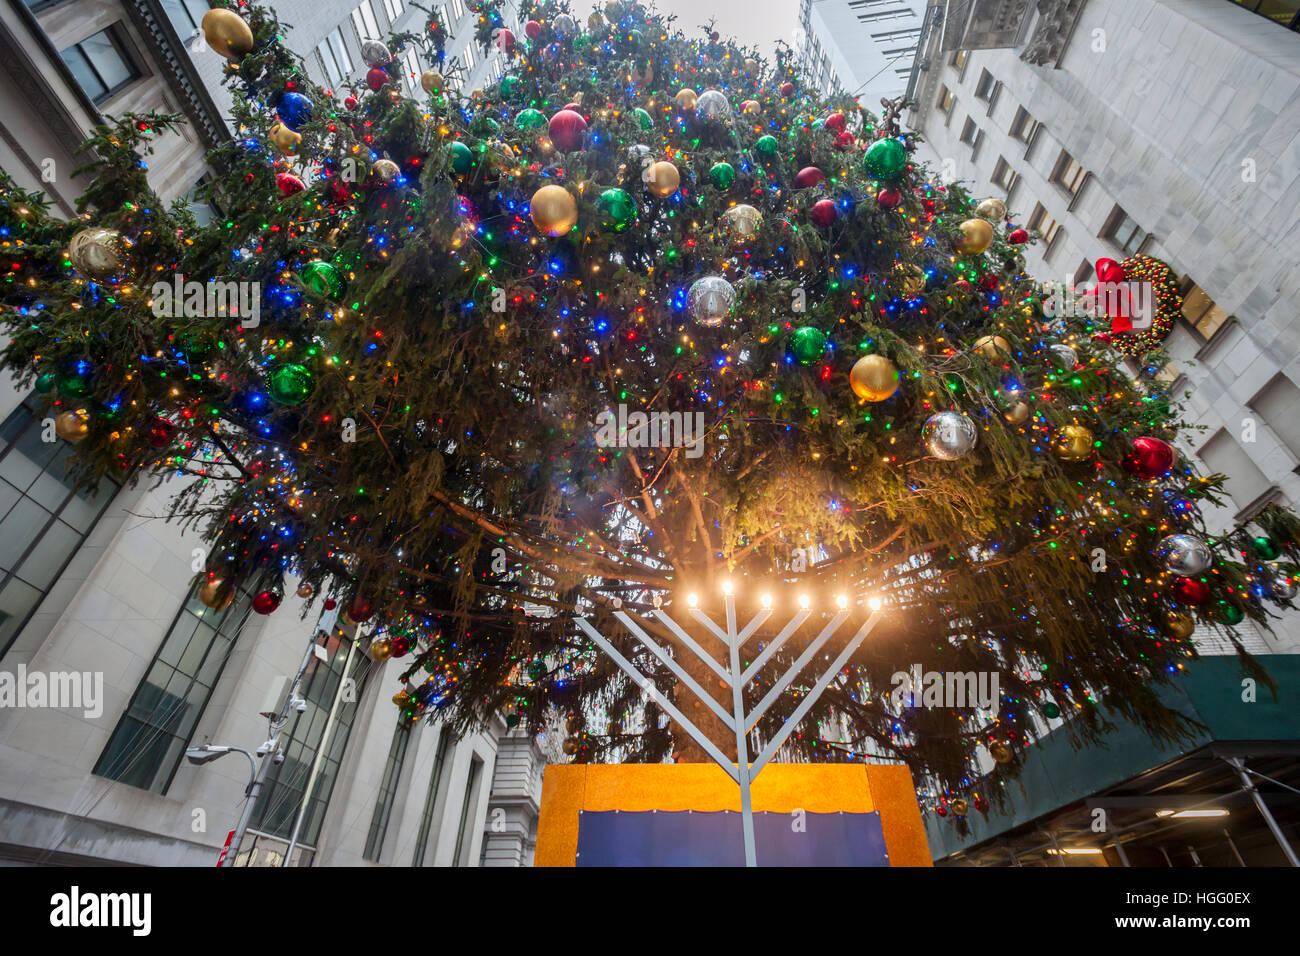 The New York Stock Exchange Christmas tree towers over their Chanukkah Menorah on Thursday, December 29, 2016. (© - Stock Image